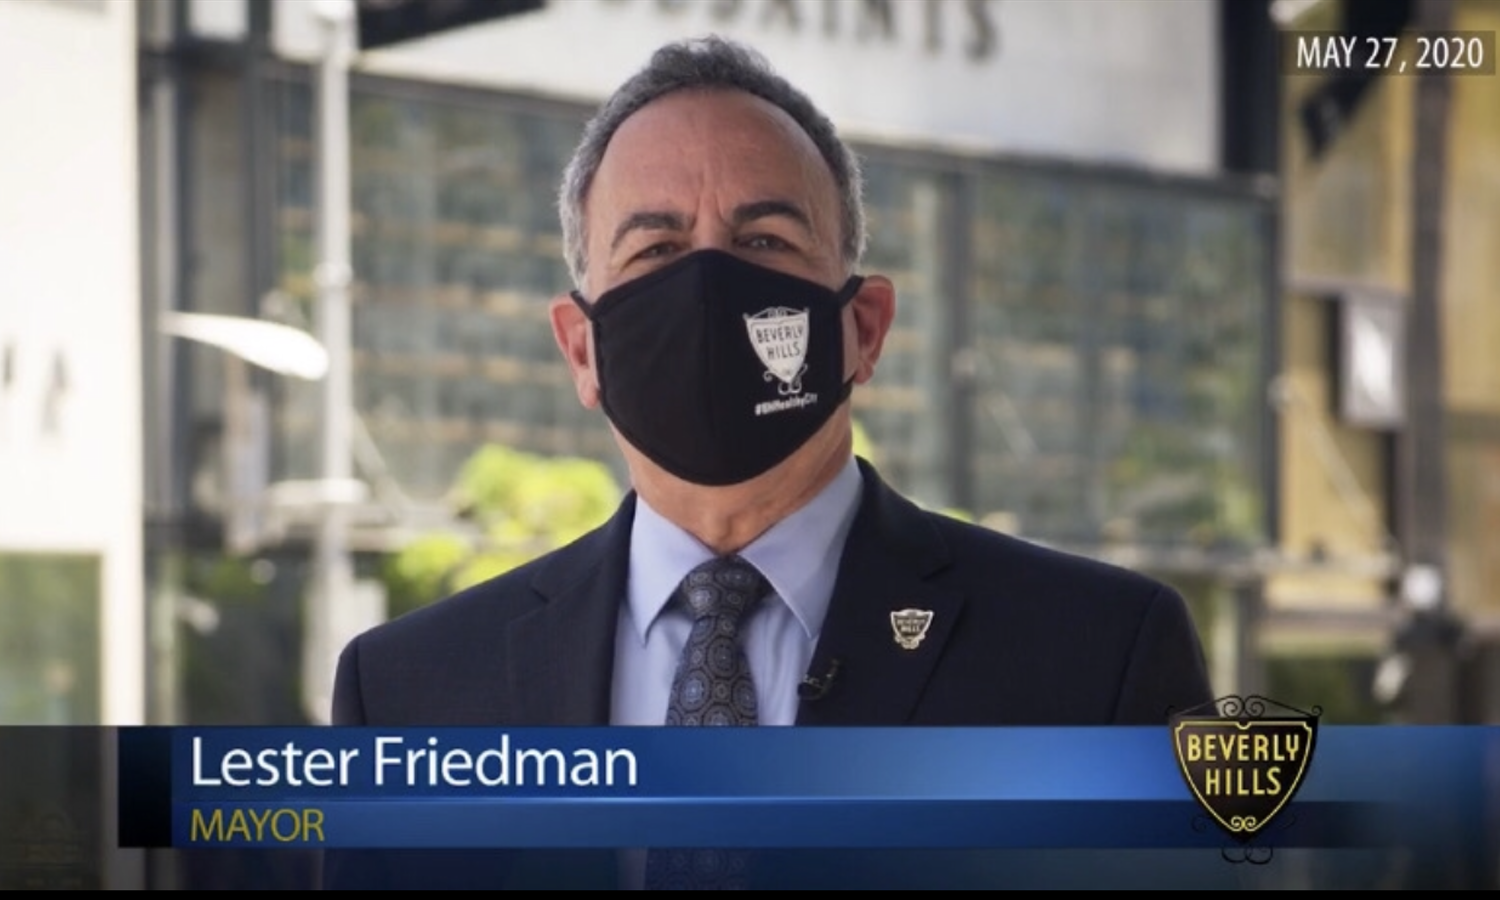 Beverly Hills Prepares to Issue Fines to Achieve Face Covering Compliance